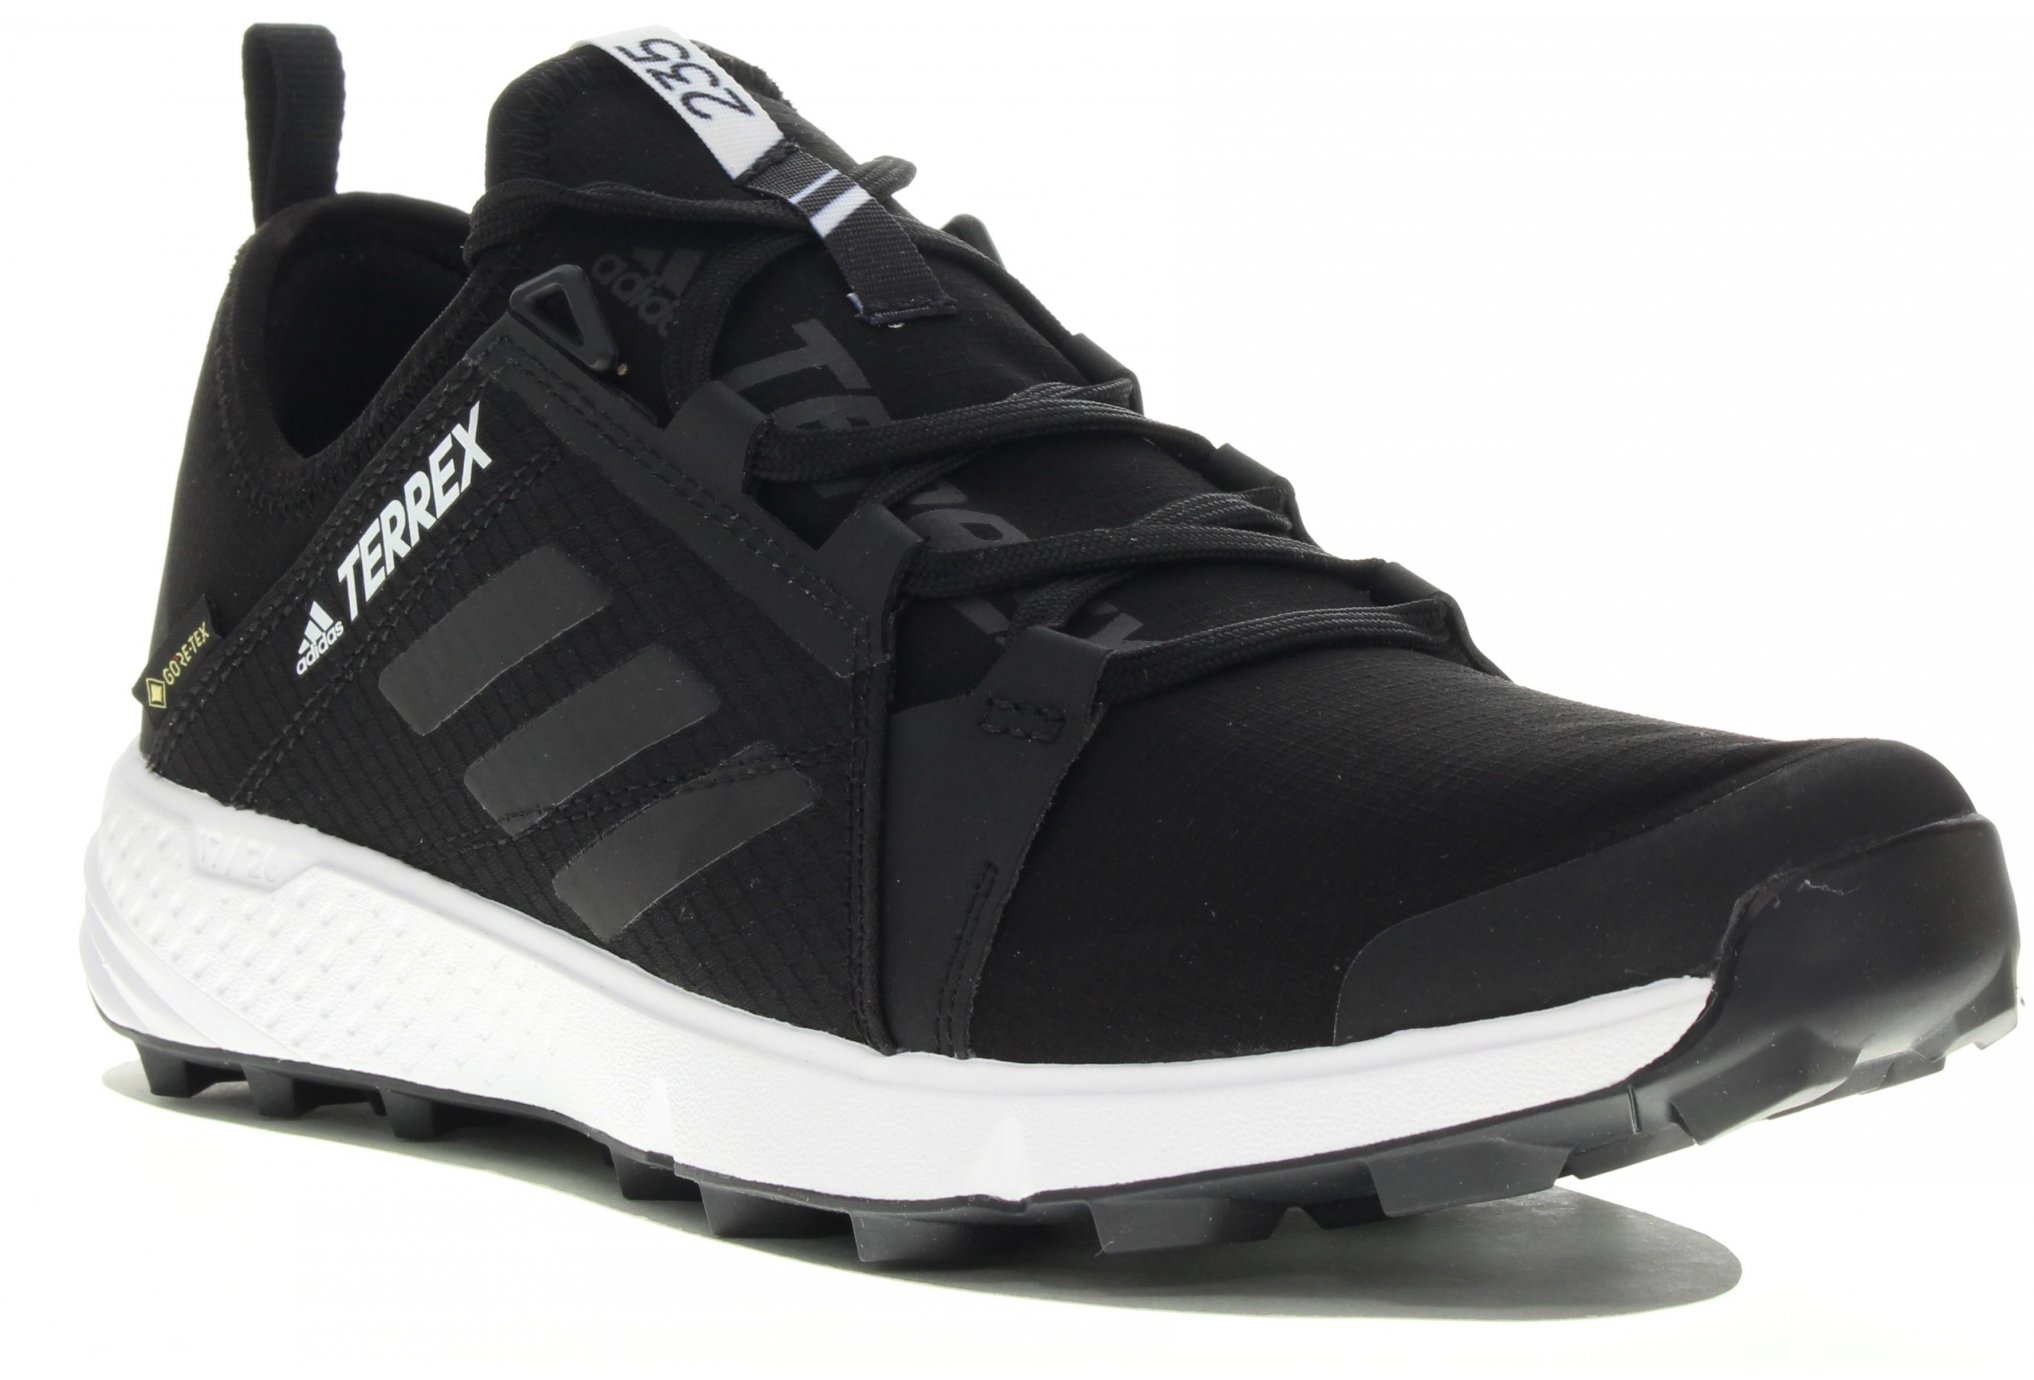 Adidas Terrex speed gore-Tex w chaussures running femme